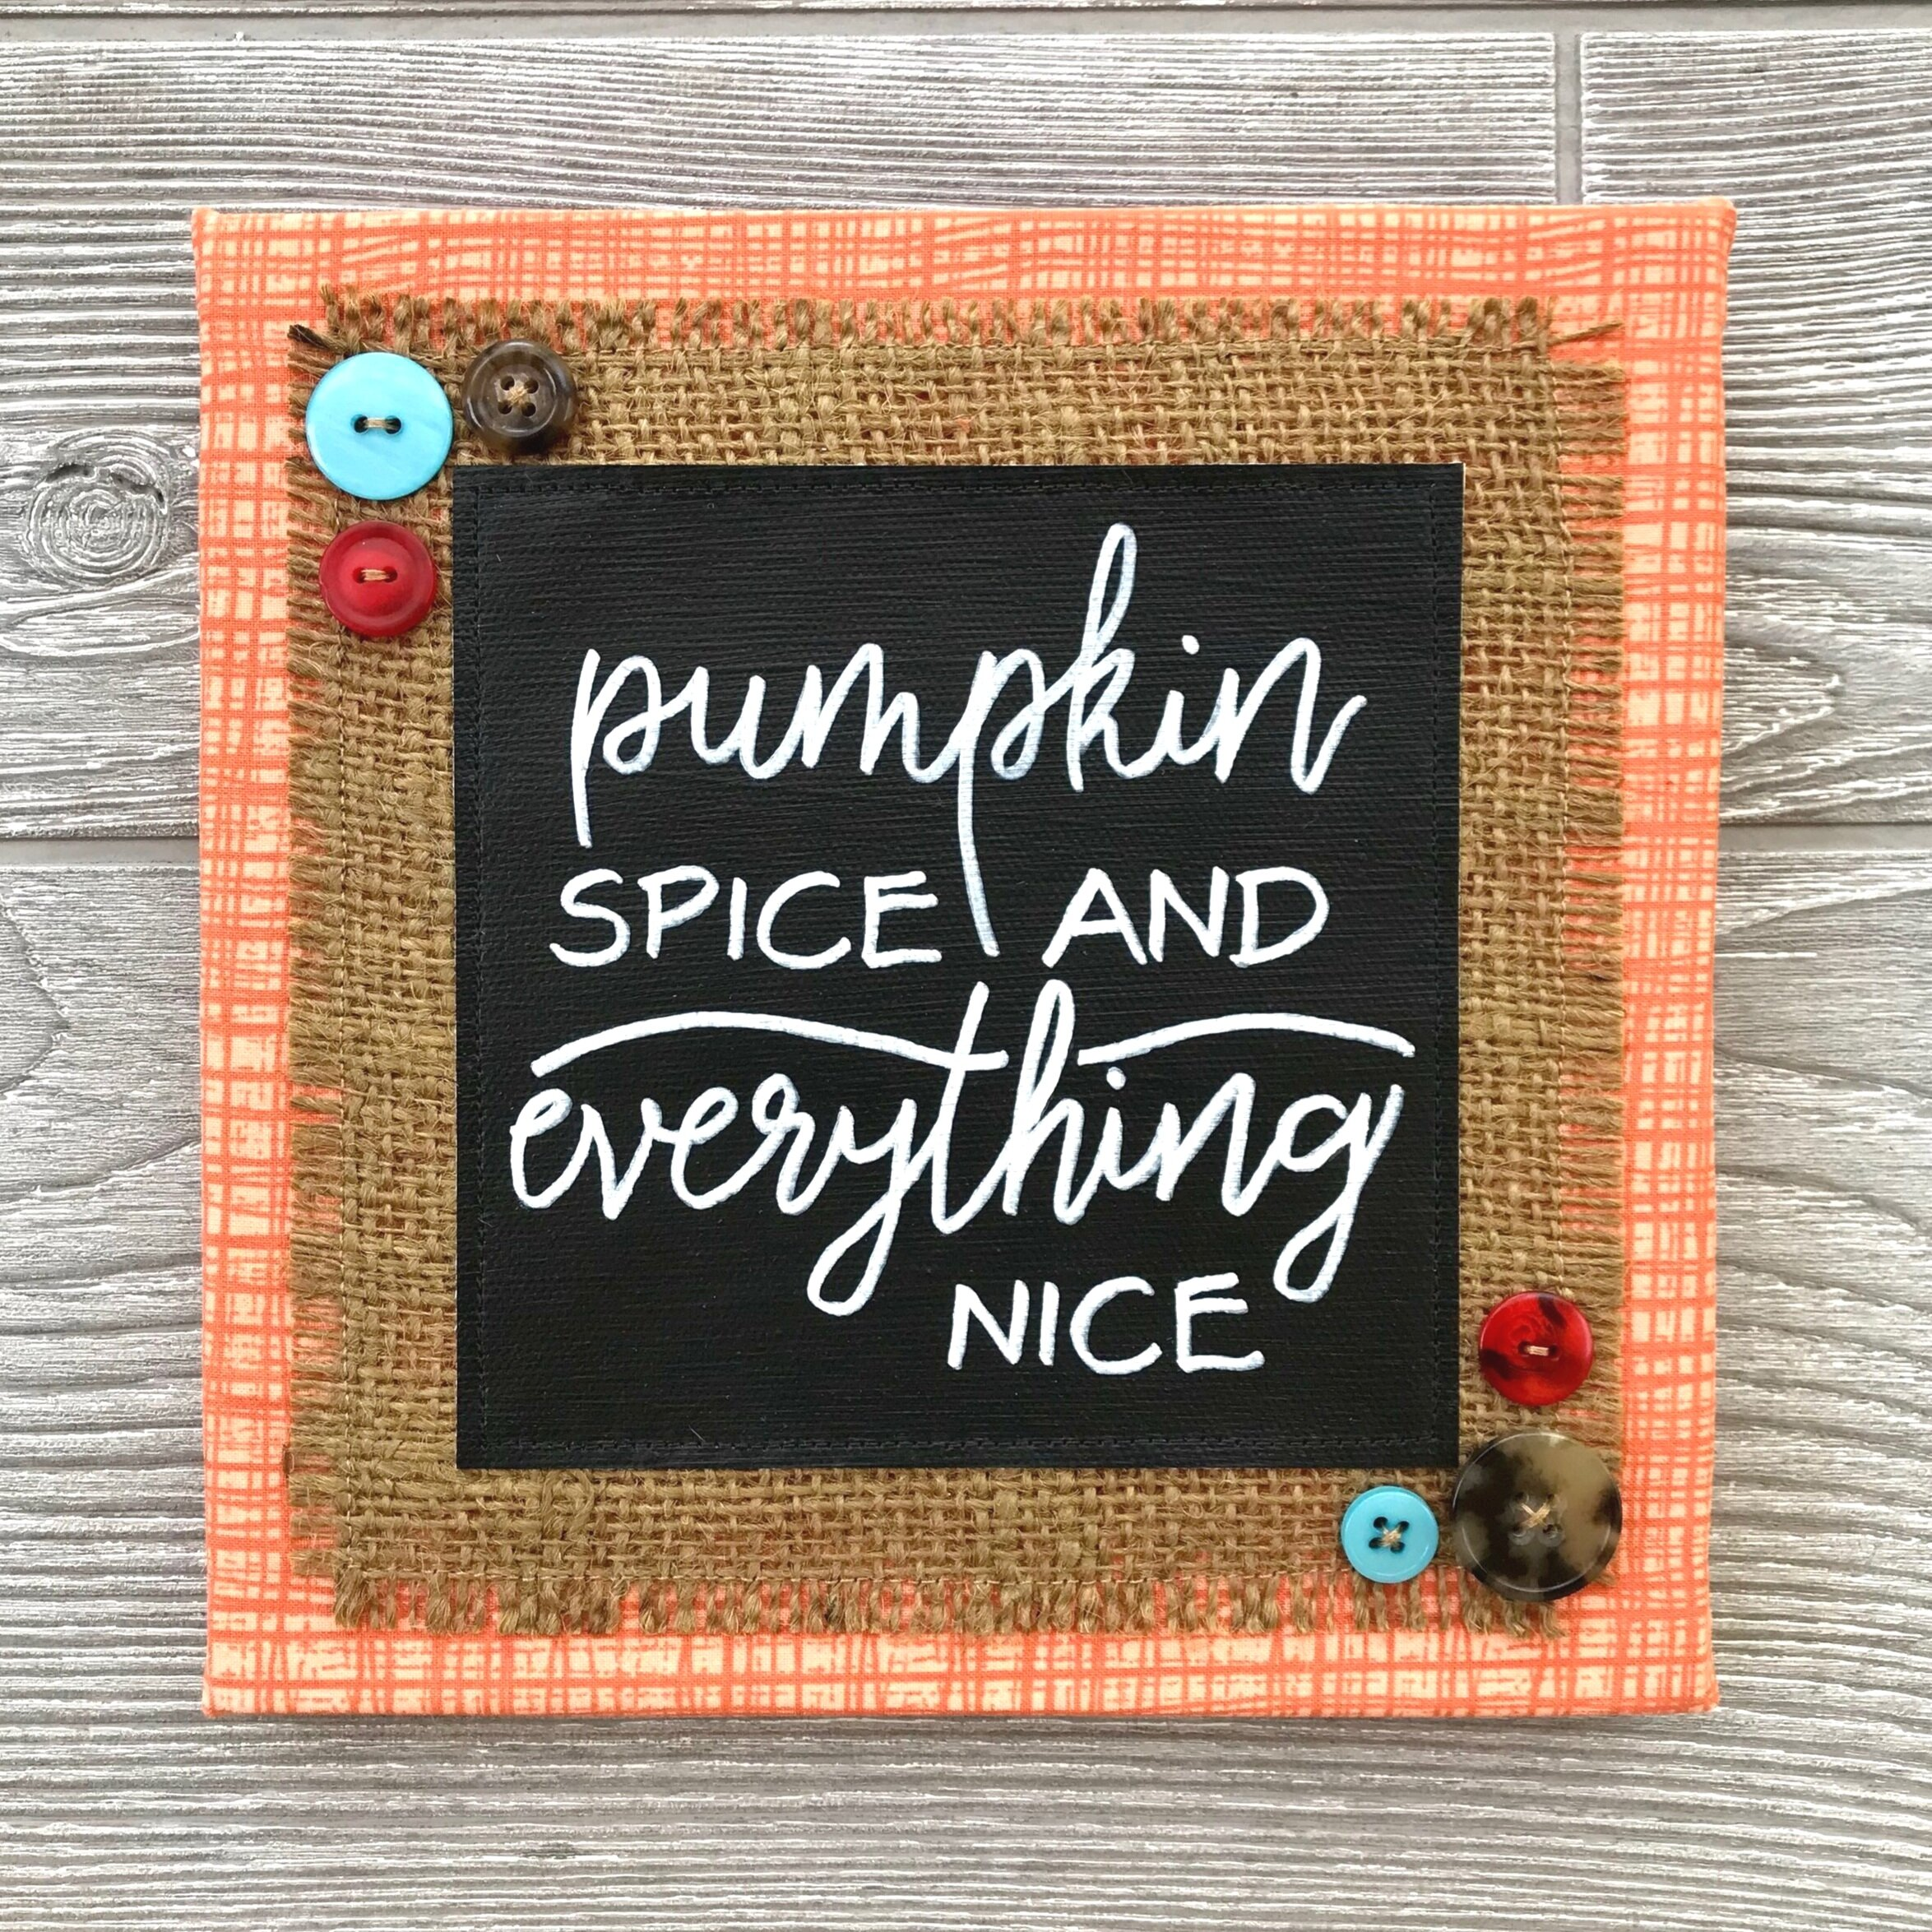 "Pumpkin Spice and Everything Nice - Let the warm and comforting scent of pumpkin pie (or that beloved pumpkin spice latte) dance across your mind. It's a recipe for pure happiness. :) This handcrafted artwork reminds us that the sights and scents of fall are truly the nicest in the world.8""x8"" Handmade Literary ArtworkElements: hand-painted and hand-lettered canvas, colorful burlap, patterned fabric, coordinating buttons, wood frame, claw hangerPrice: $25 (includes US-based shipping)"